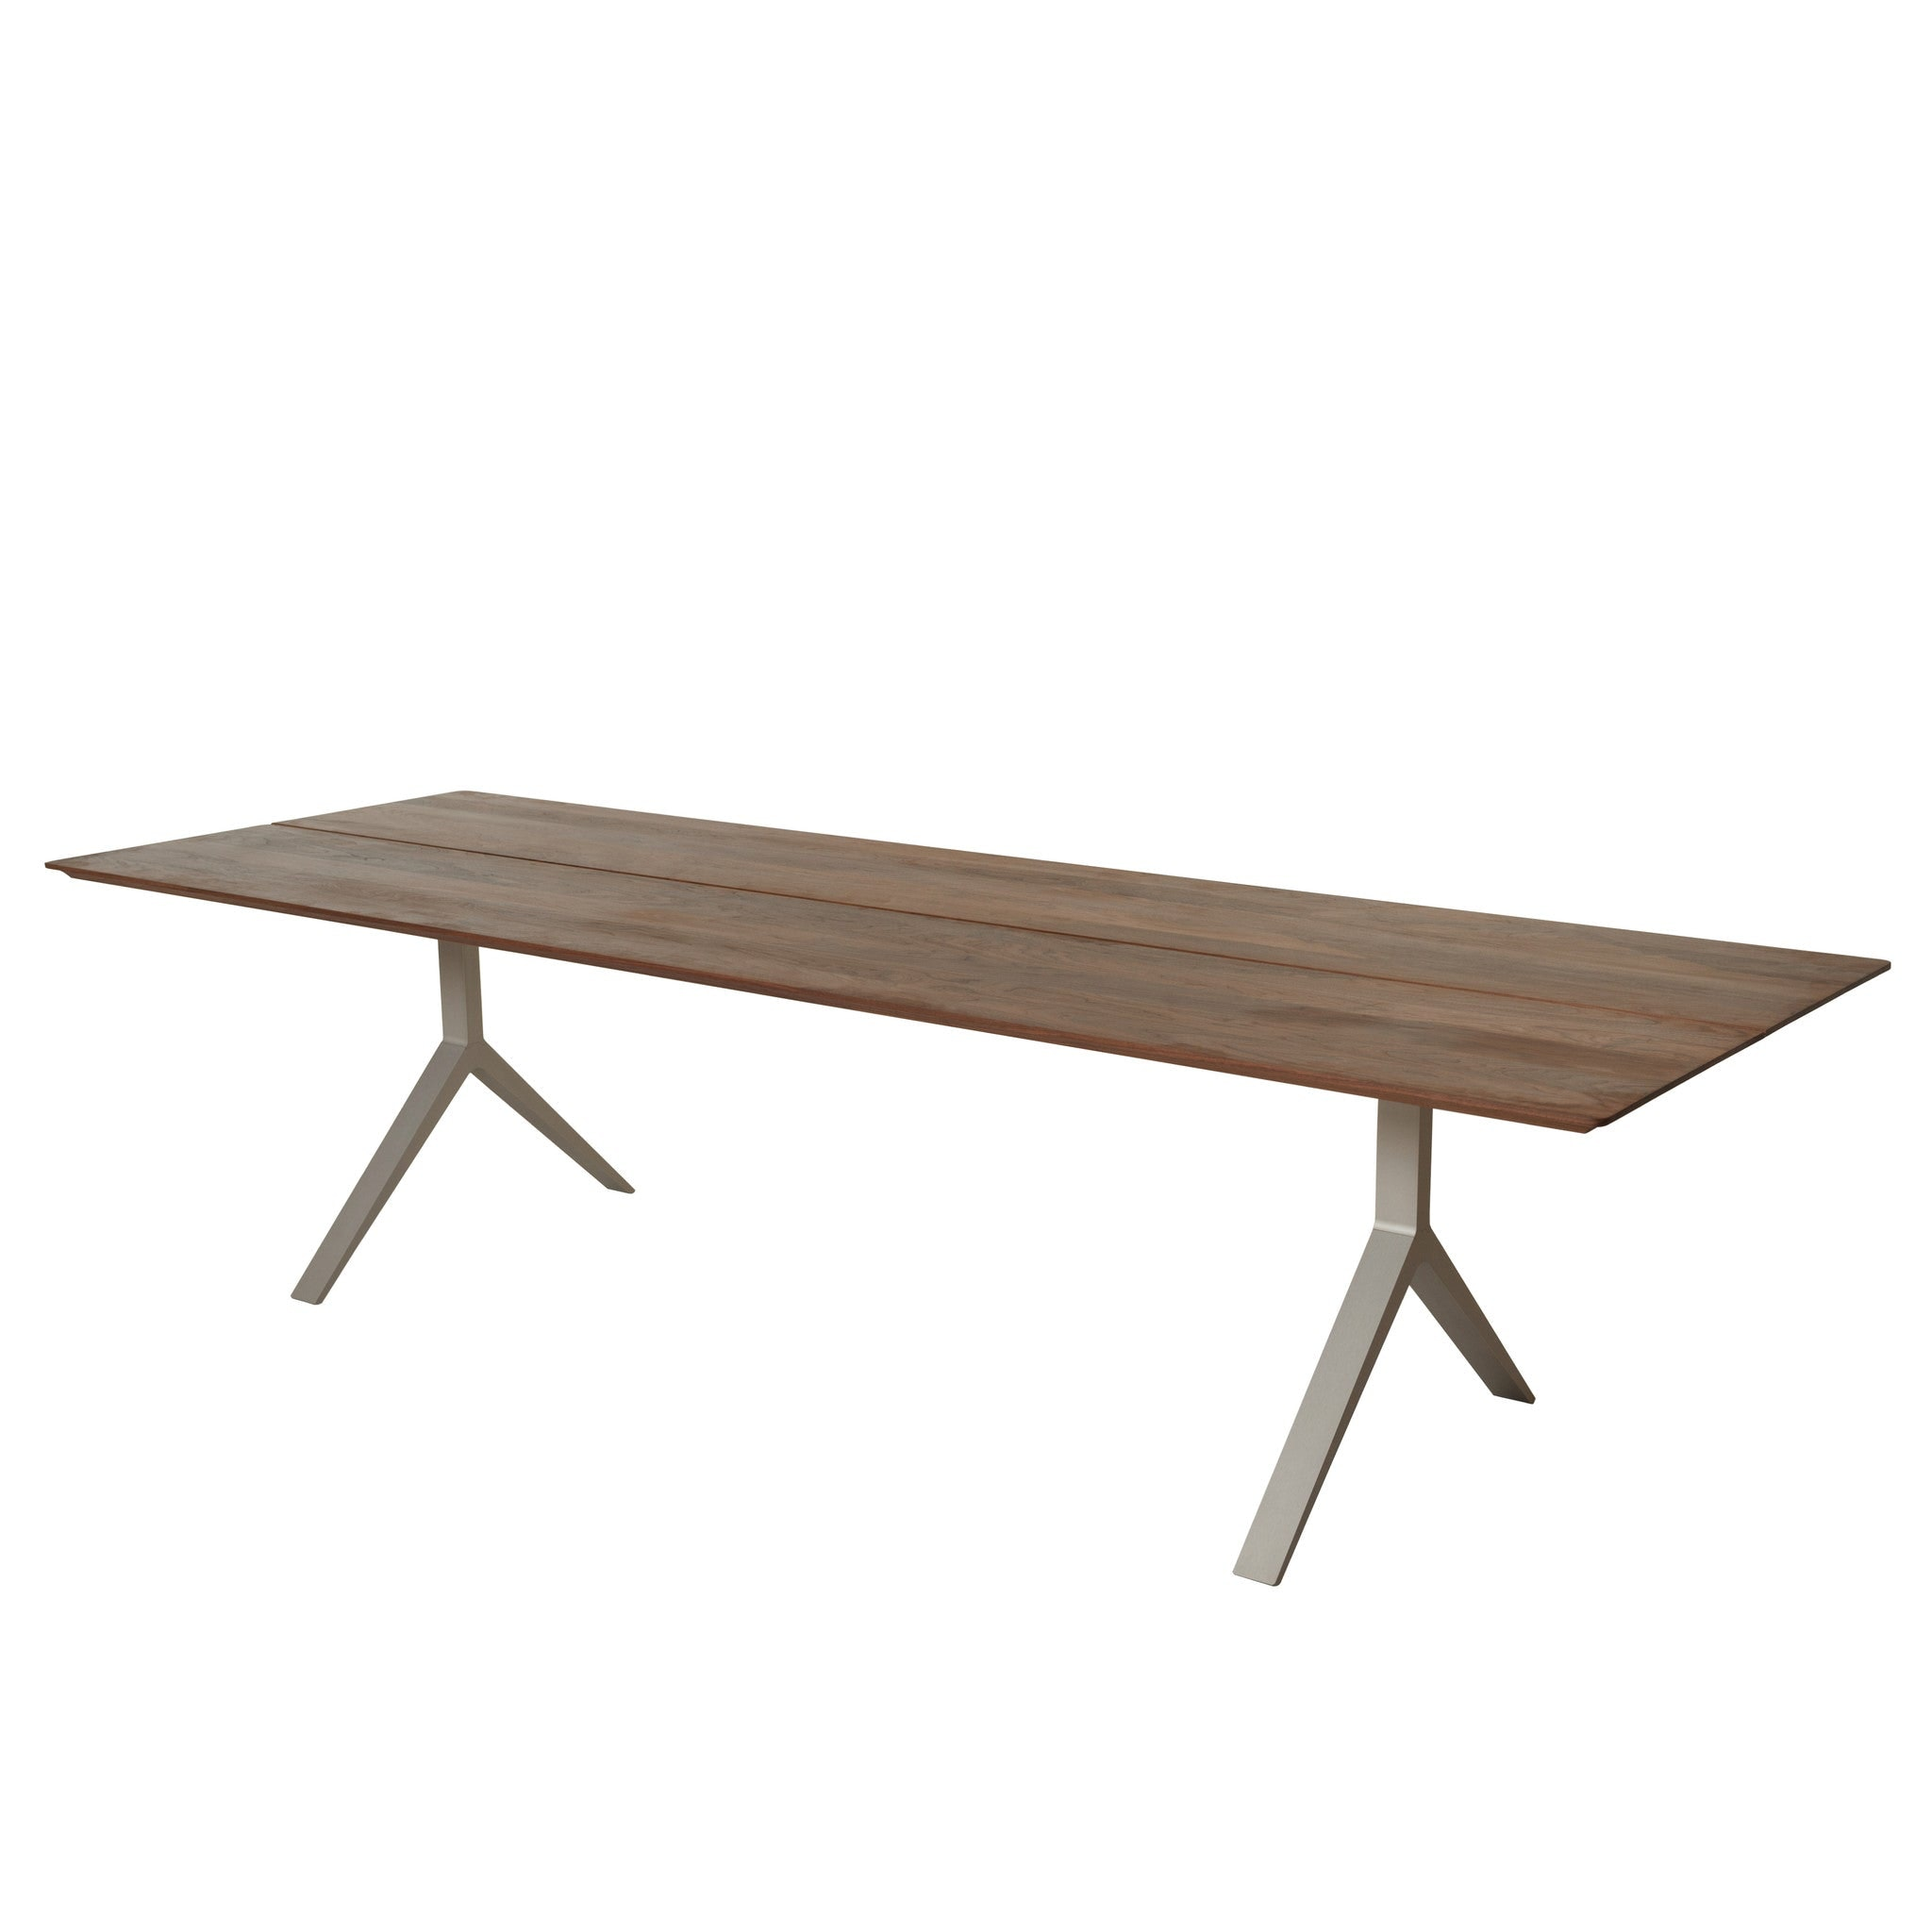 Overton Table by Matthew Hilton — haus